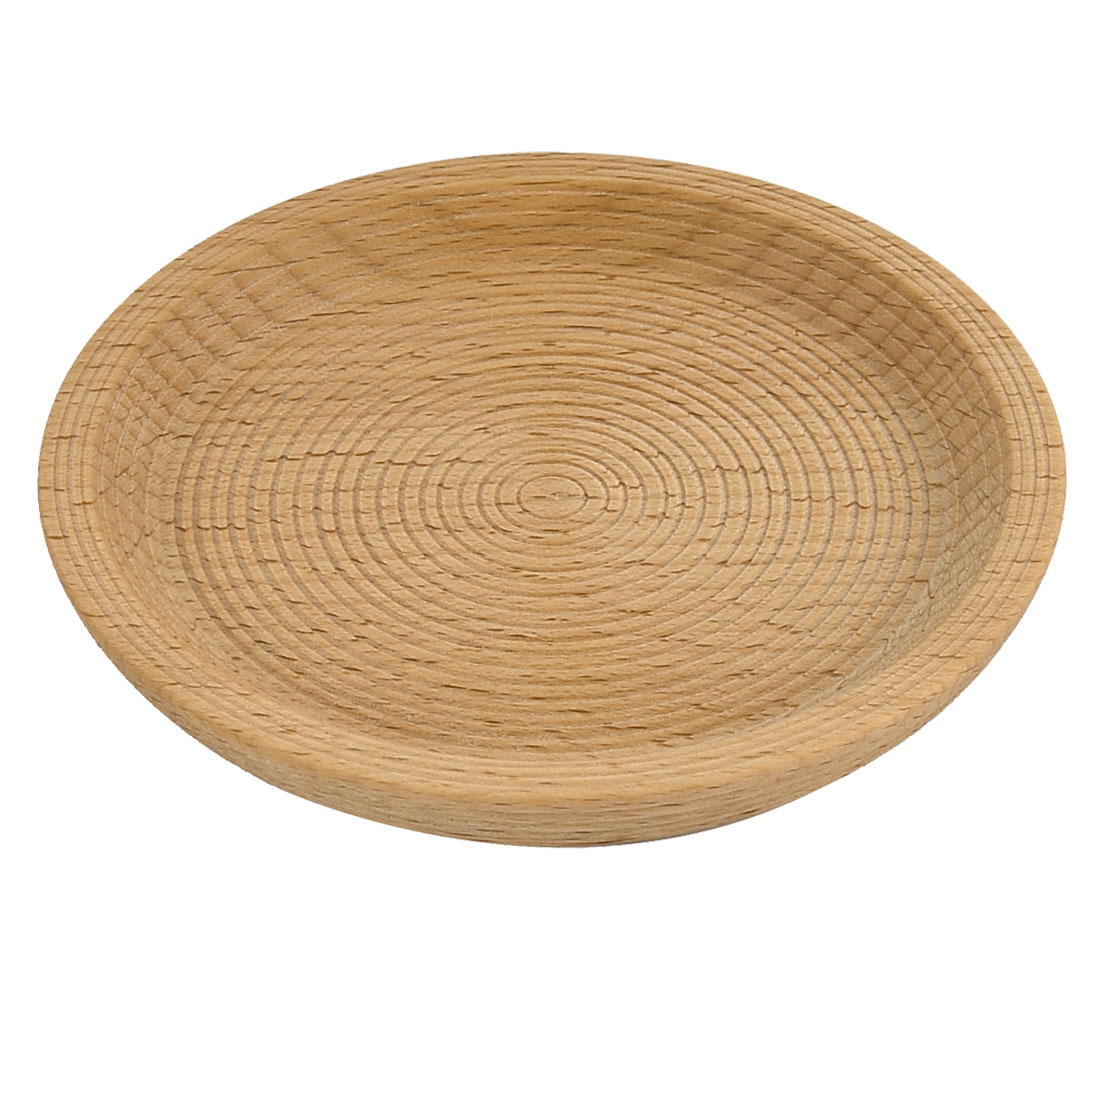 Restaurant Wood Grain Pattern Round Shape Tea Cup Mat Tray Container 12cm Dia